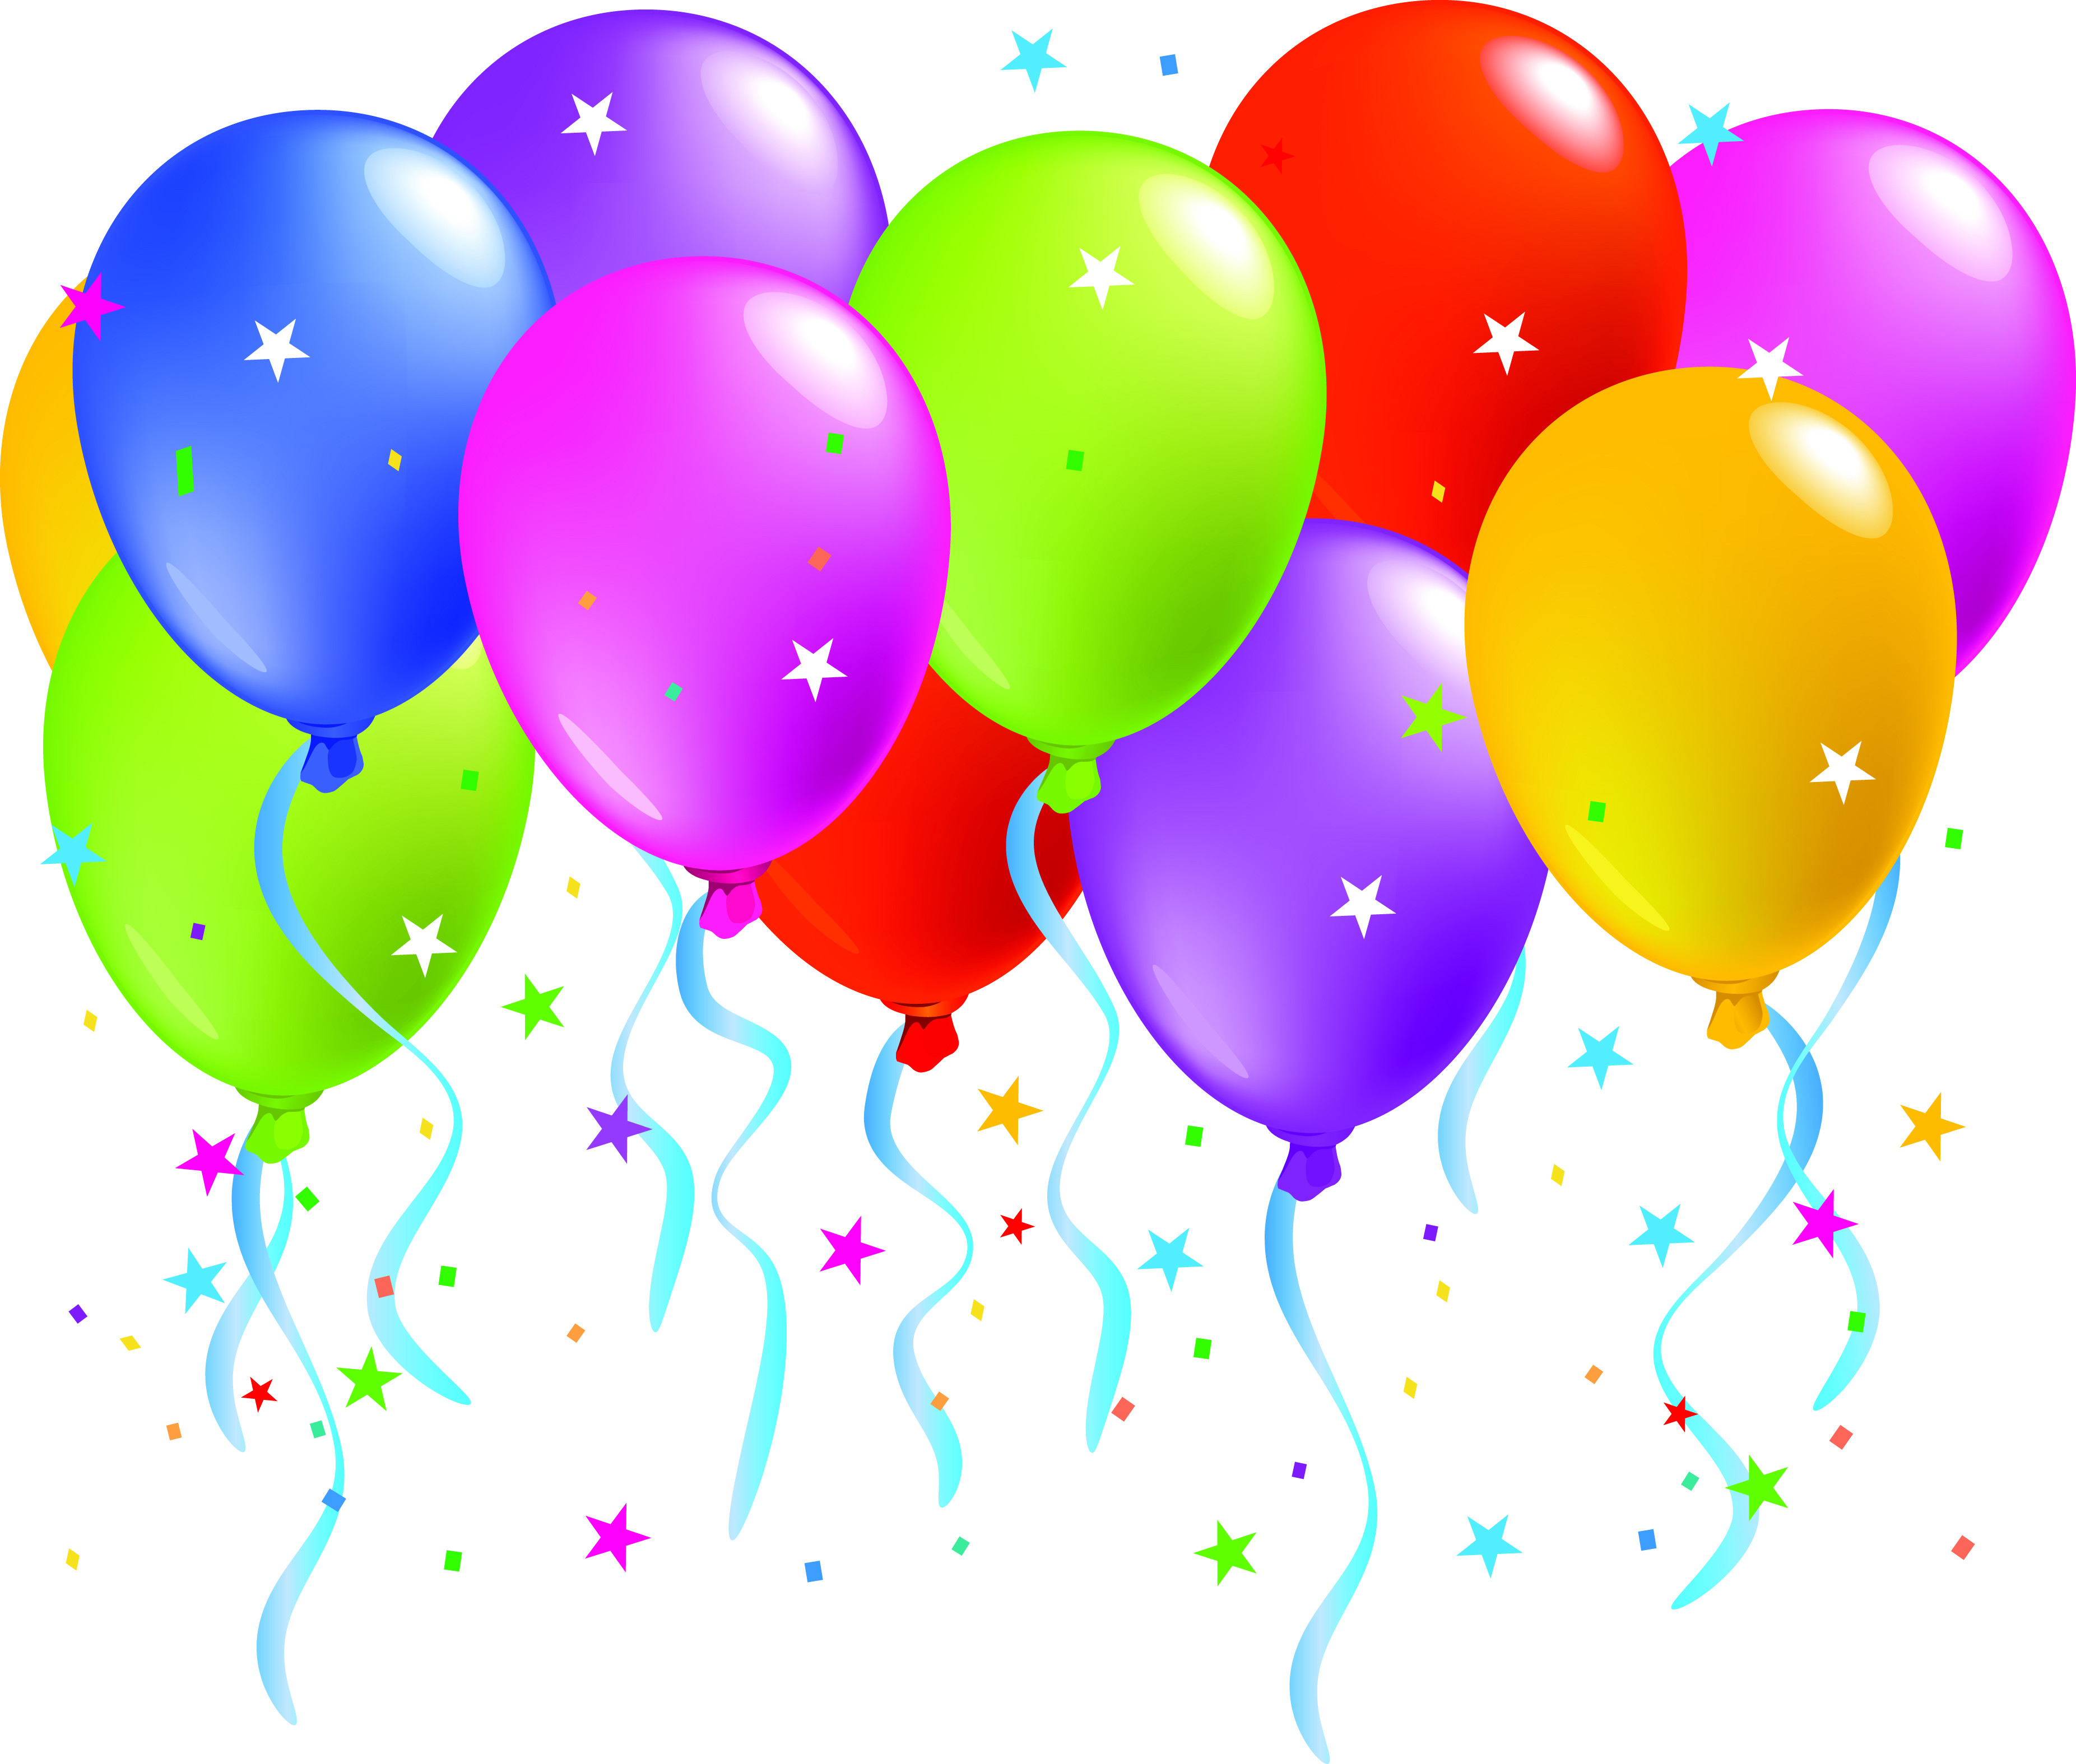 birthday party balloons clipart ; 1517388813-birthday-party-balloons-clipart